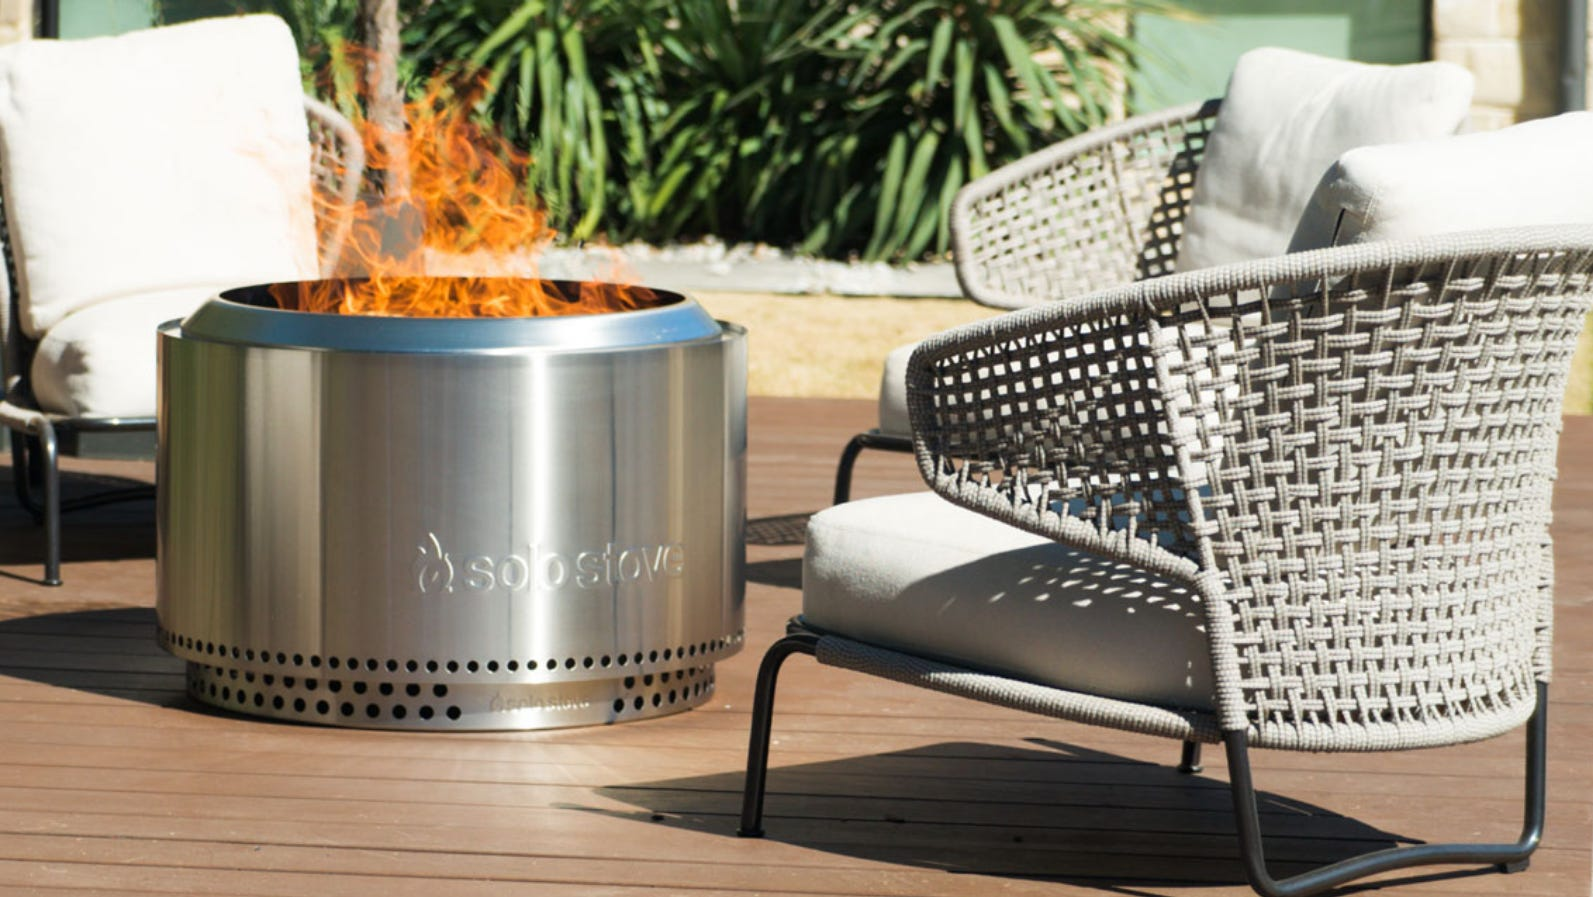 You can get Solo Stove bundles for a major discount right now